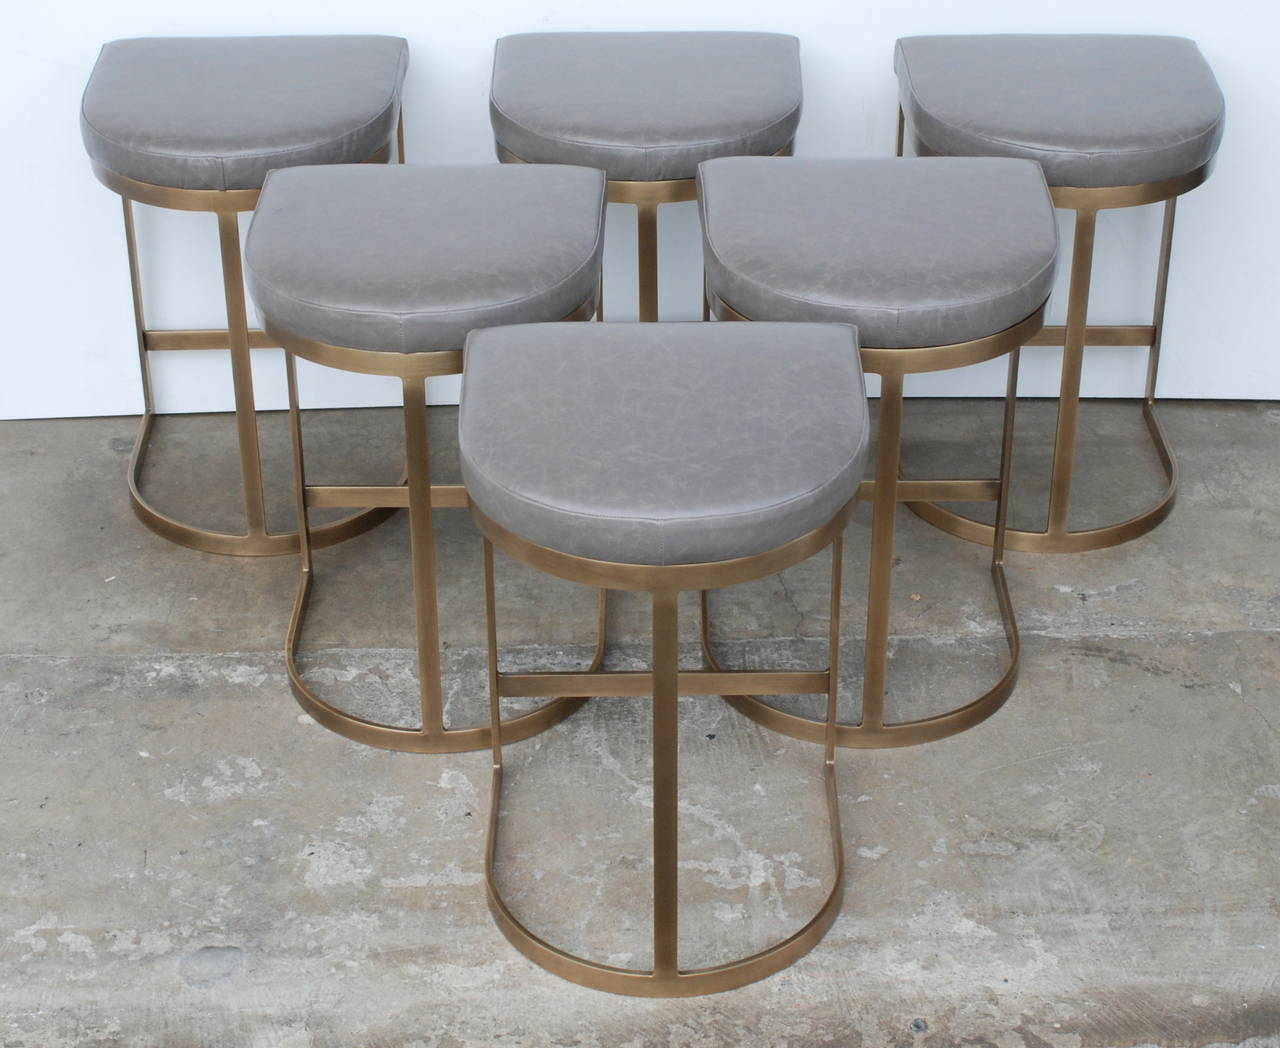 These flat bar Milo Baughman bar stools have been replated in a beautiful burnished brass which involves a high level of hand polishing. The seats have been recovered in luxurious Italian gray leather. These are in mint condition.